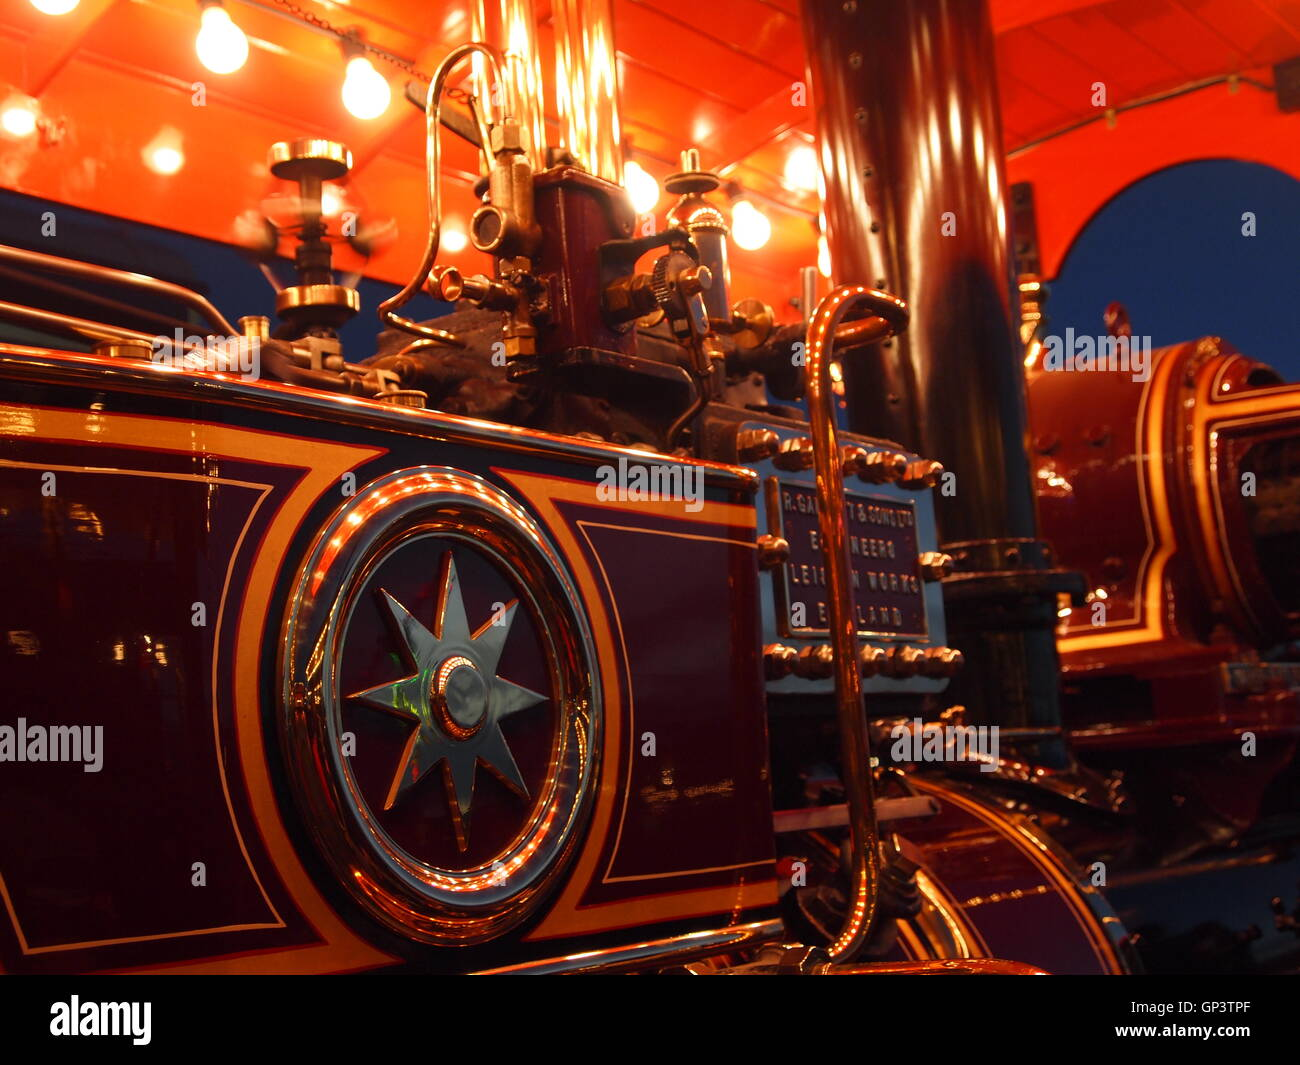 Close up of a section of a Showmans engine lit up at night - Stock Image